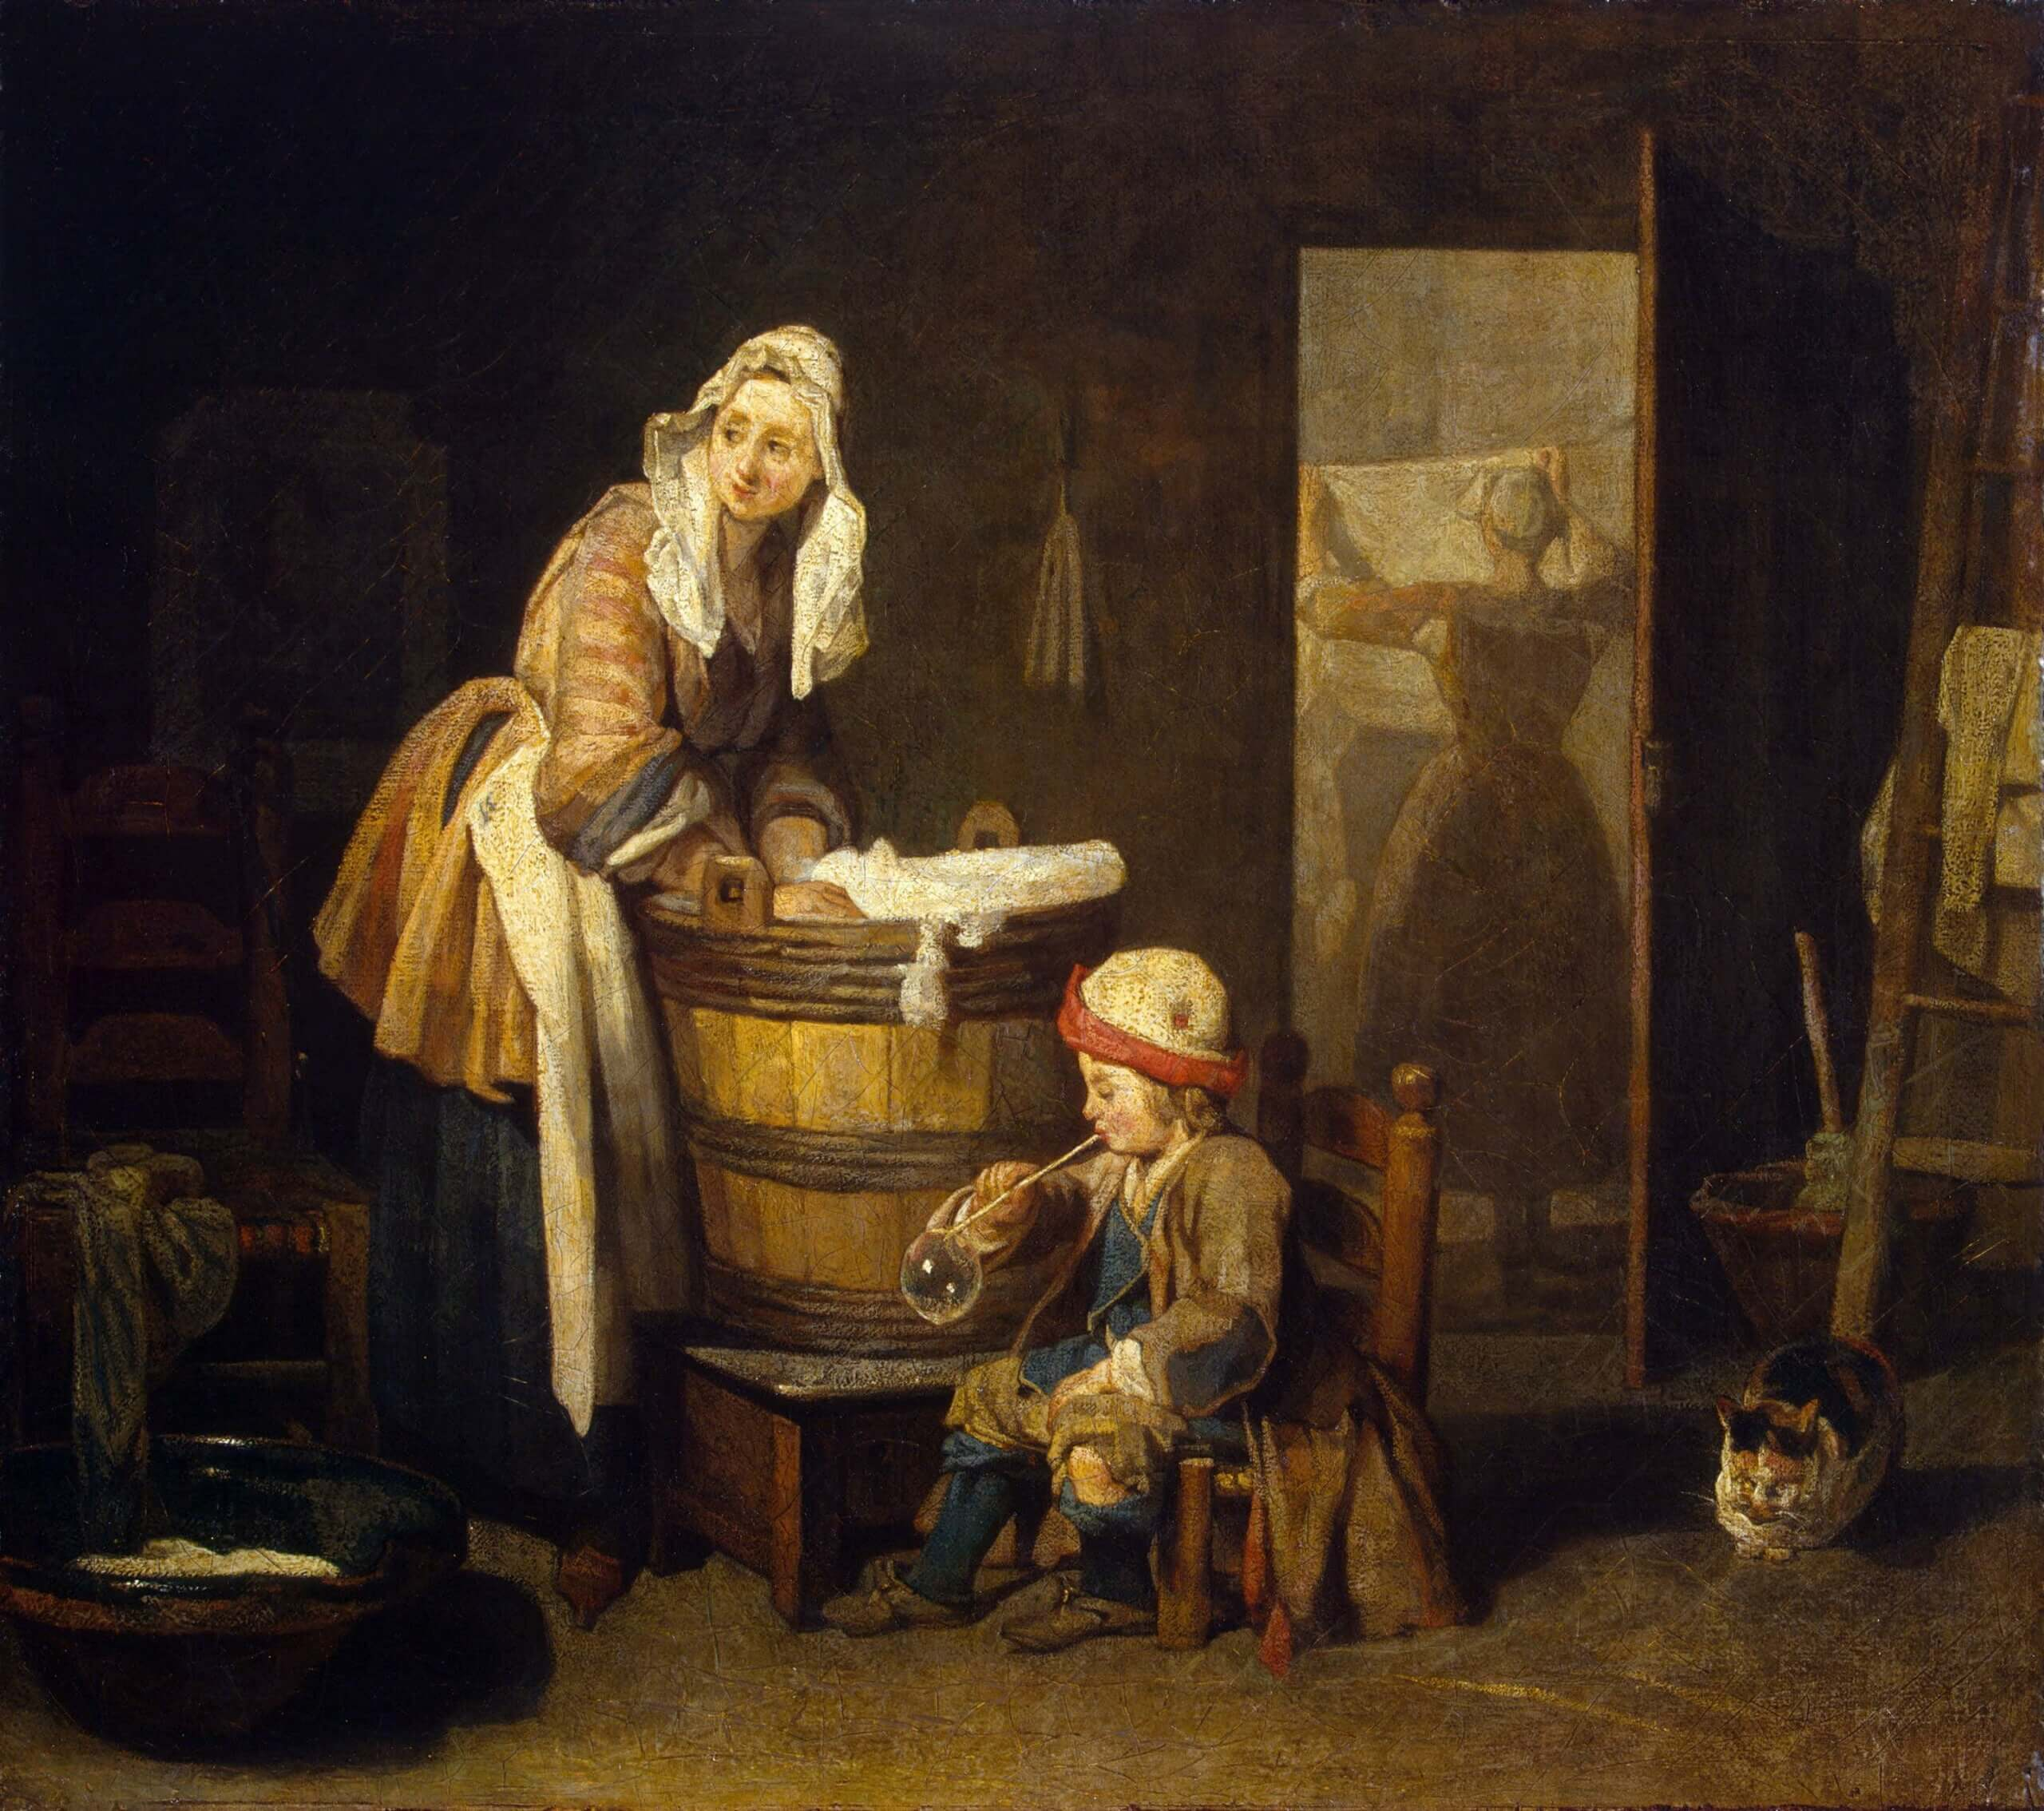 Jean Siméon Chardin, <i>The Laundress</i>, 1733, oil on canvas, 38 x 43 cm, The State Hermitage Museum